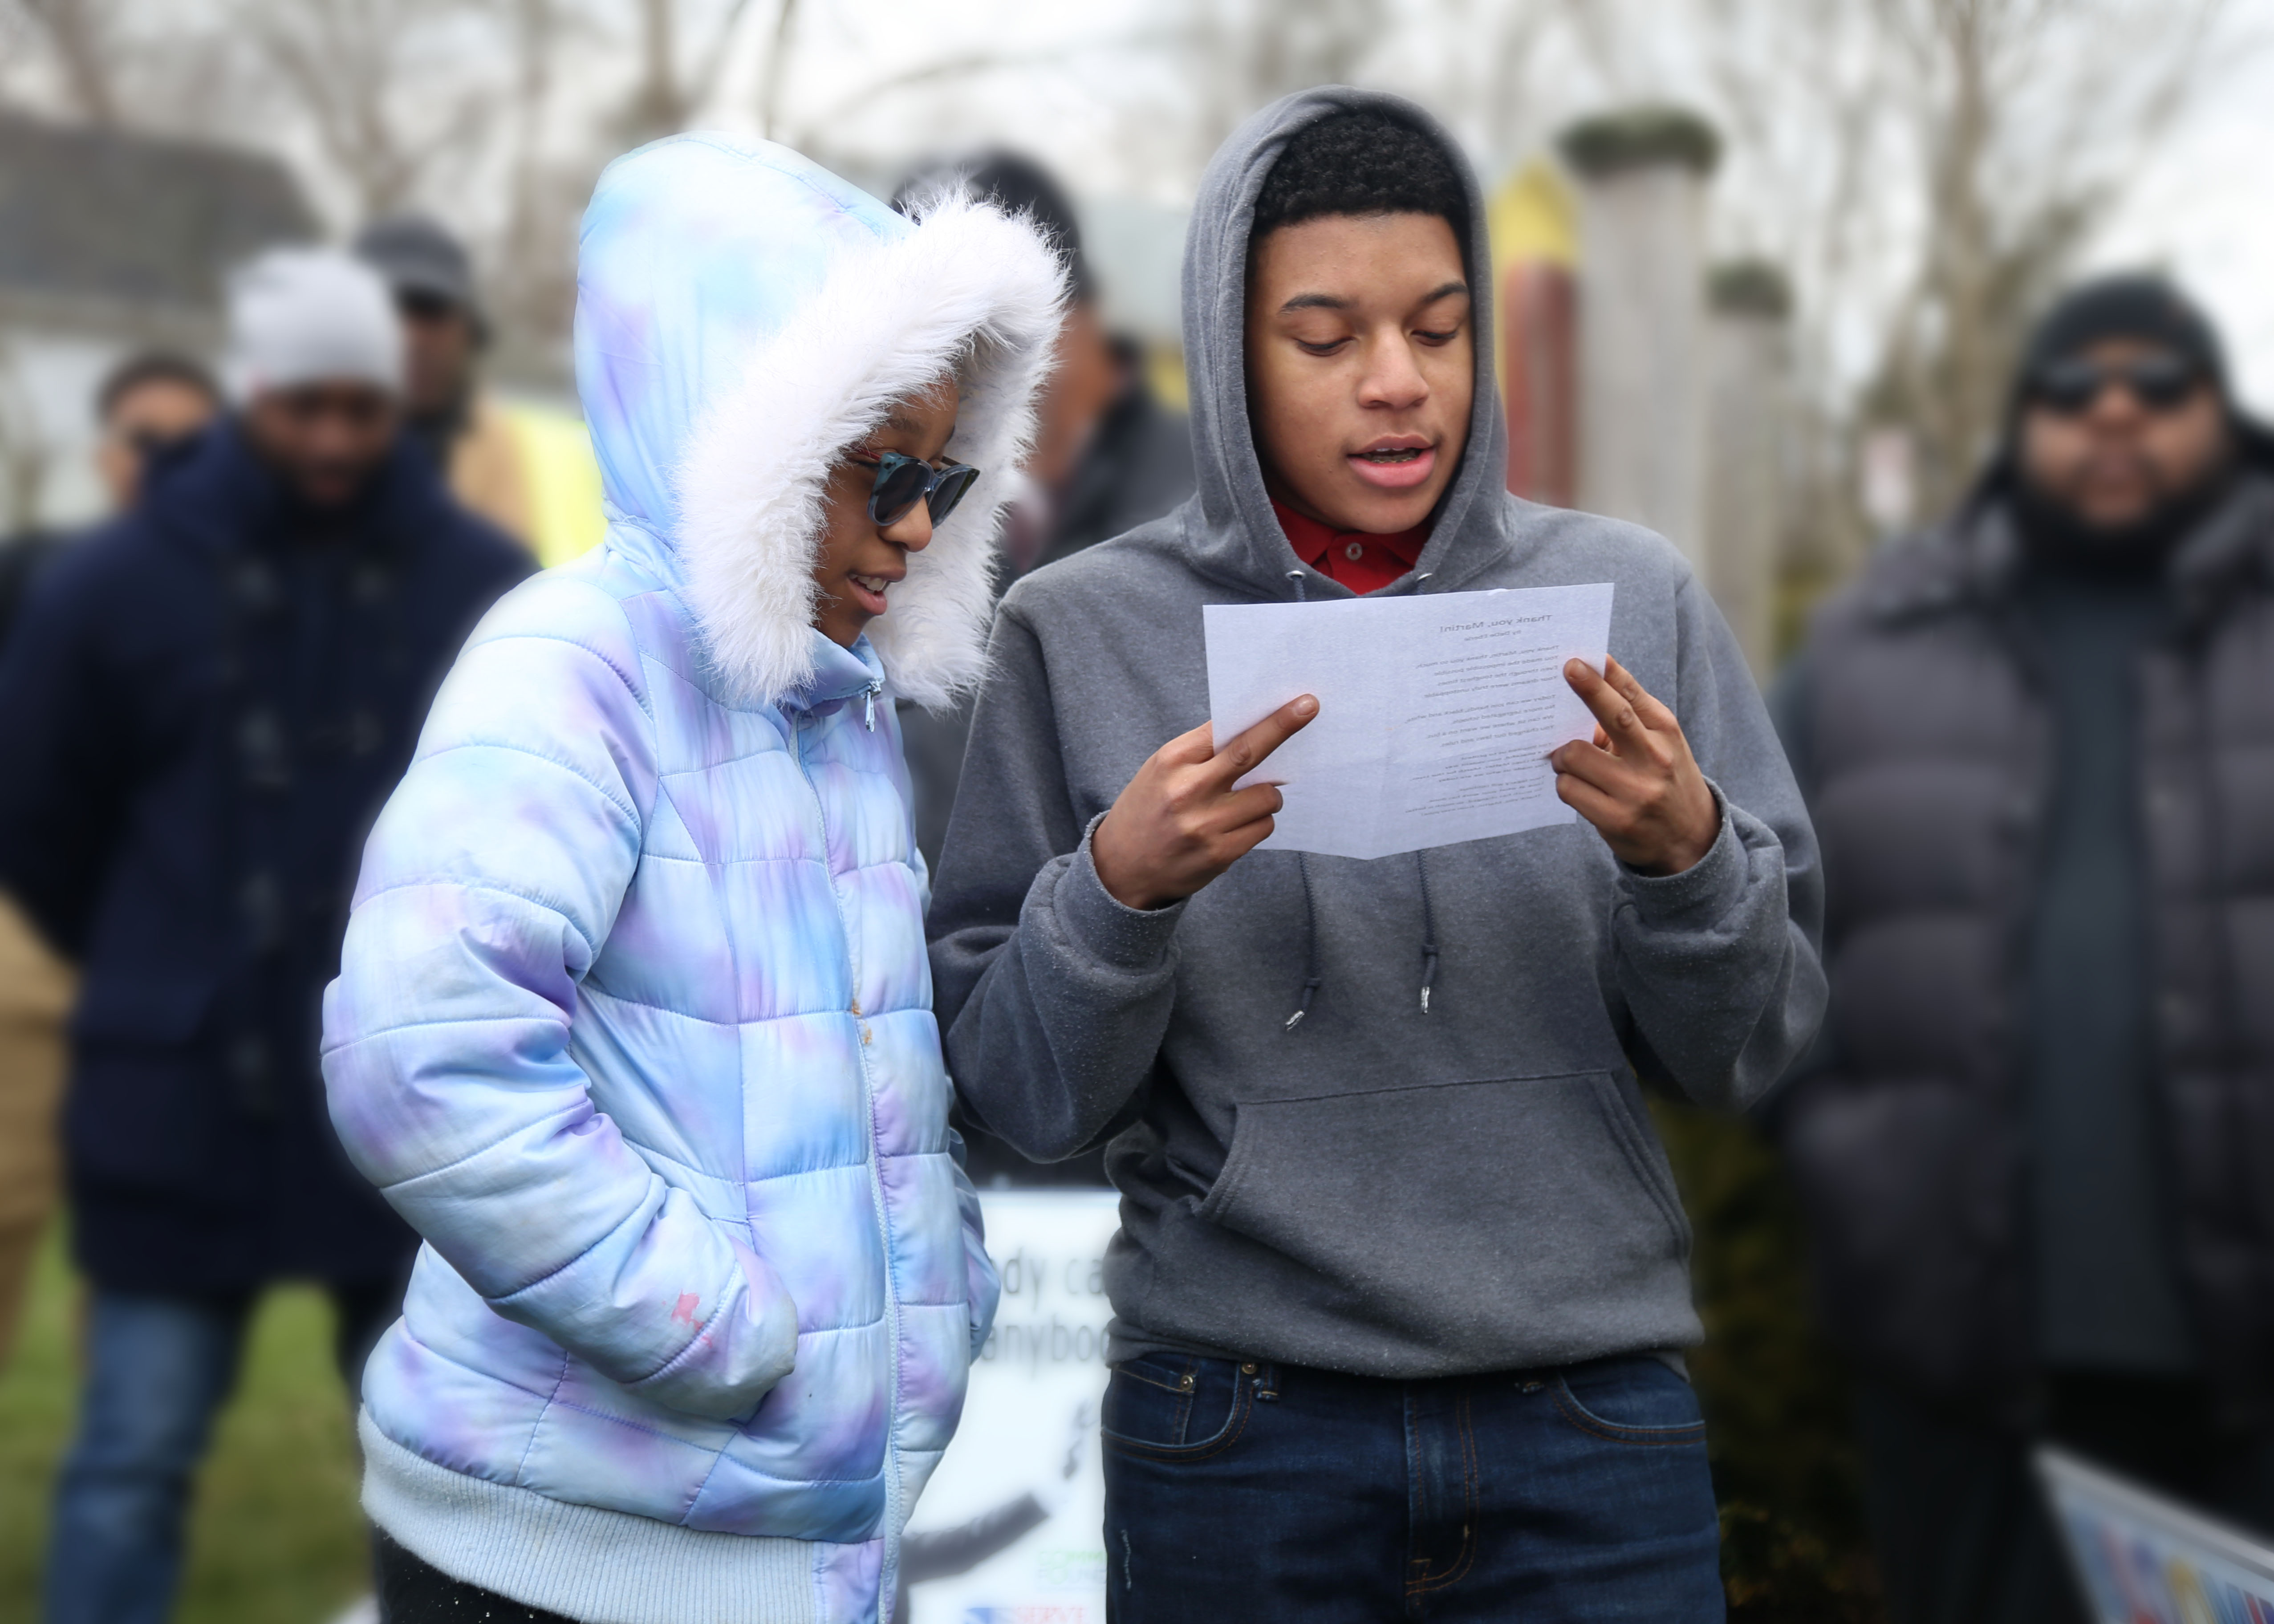 Student Shaun Wilson (right) reads a poem written by sixth-grade student Demaris Eberle (left) before the march.